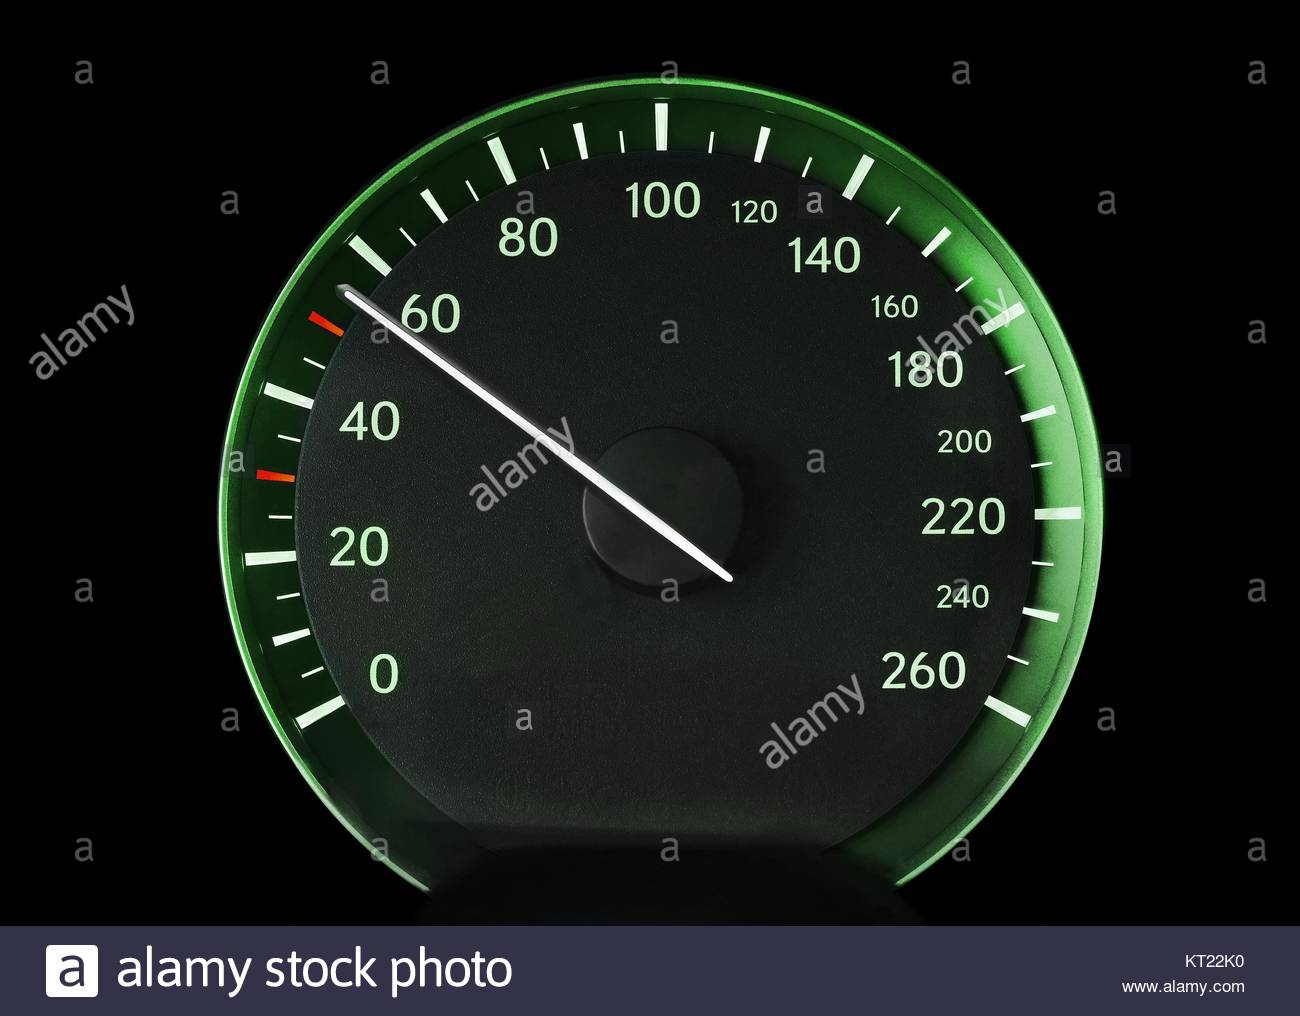 Speedometer of a car - Stock Image